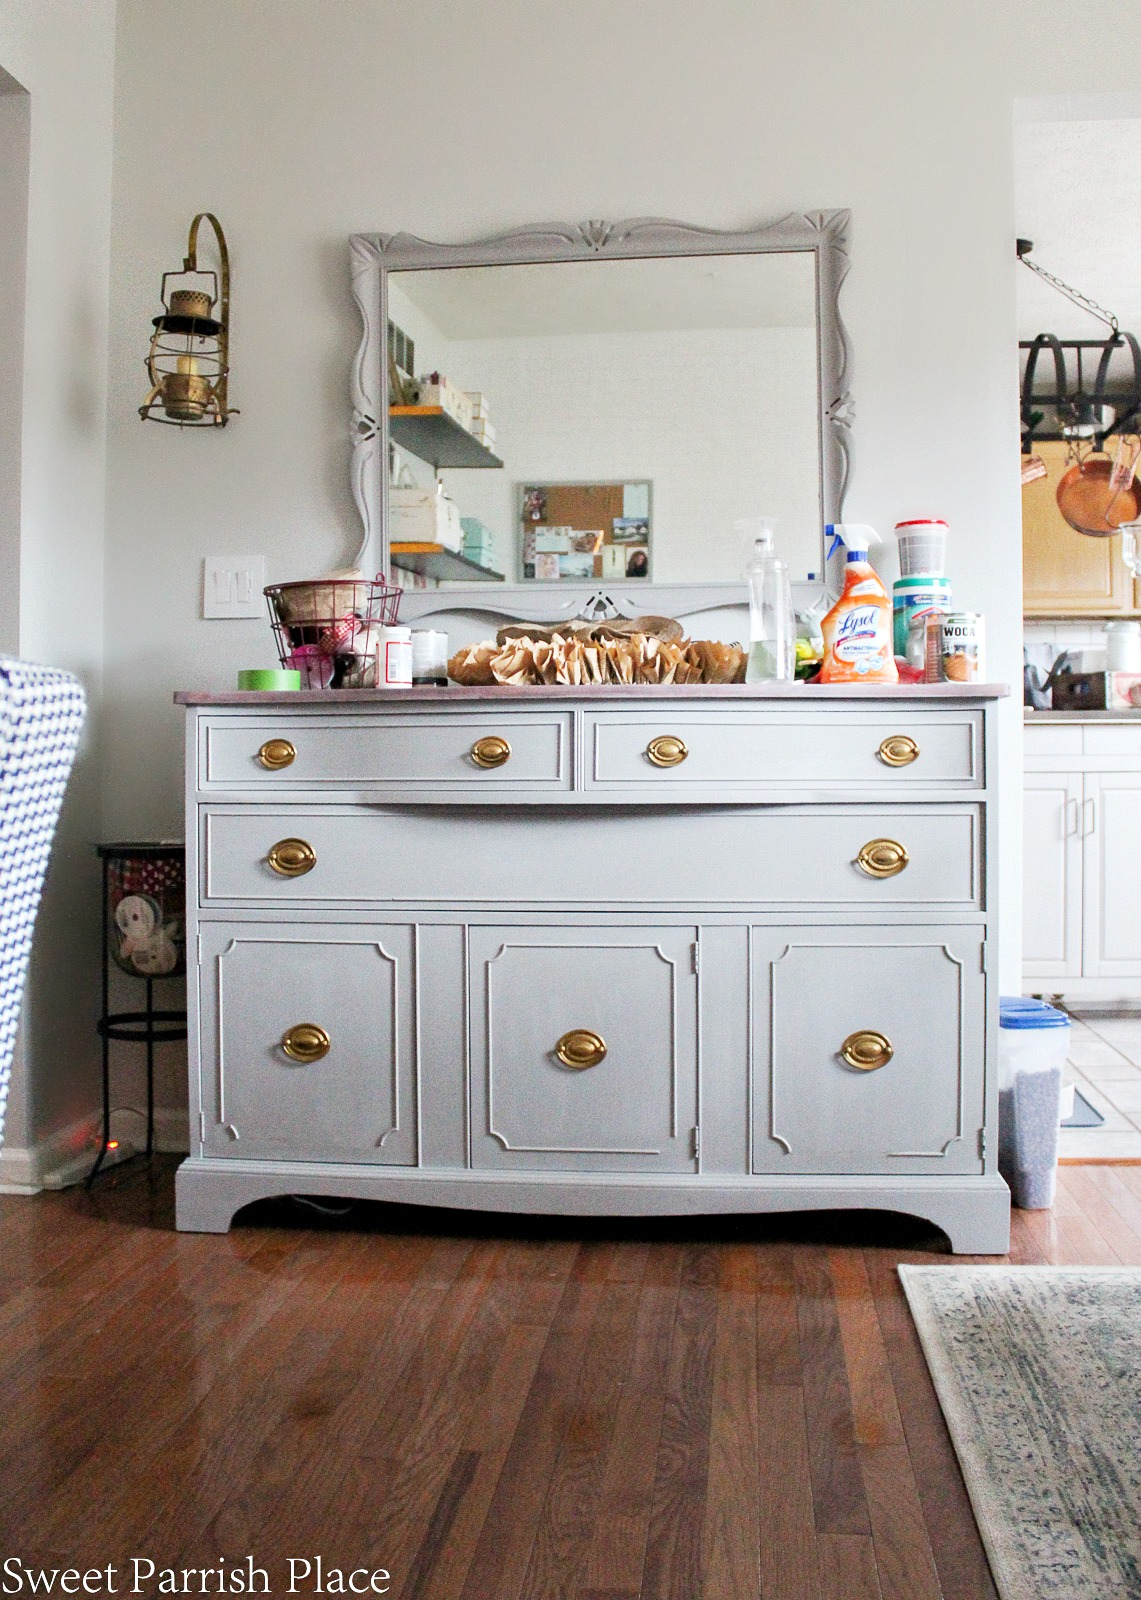 It's Week four of the $100 Room Challenge and I'm sharing my DIY painted Buffet and mirror.